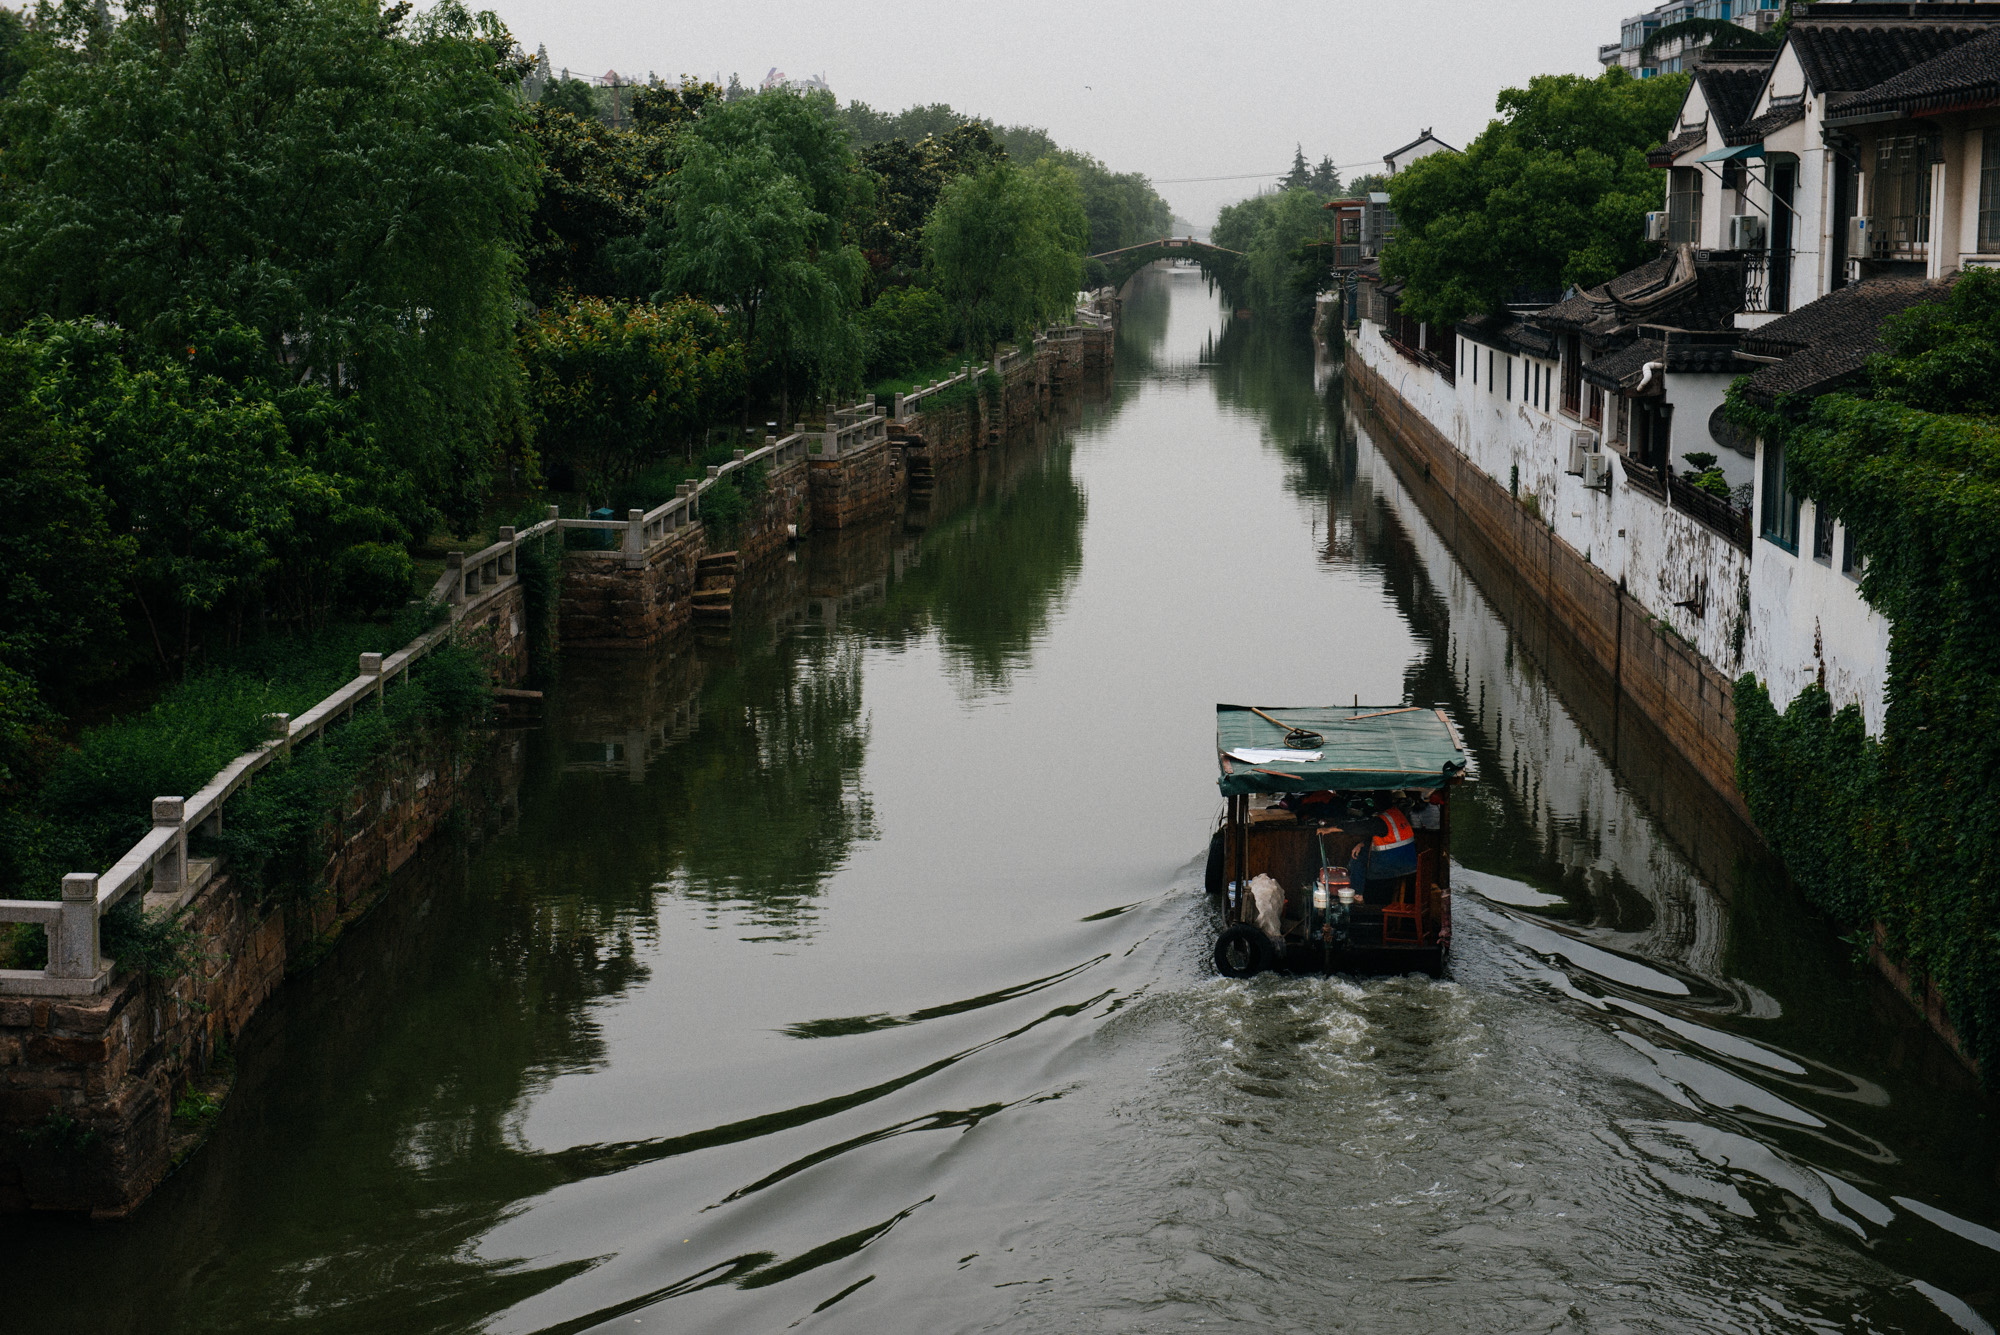 A boat used for cleaning the water passes through a canal close to the  Lingering Garden .